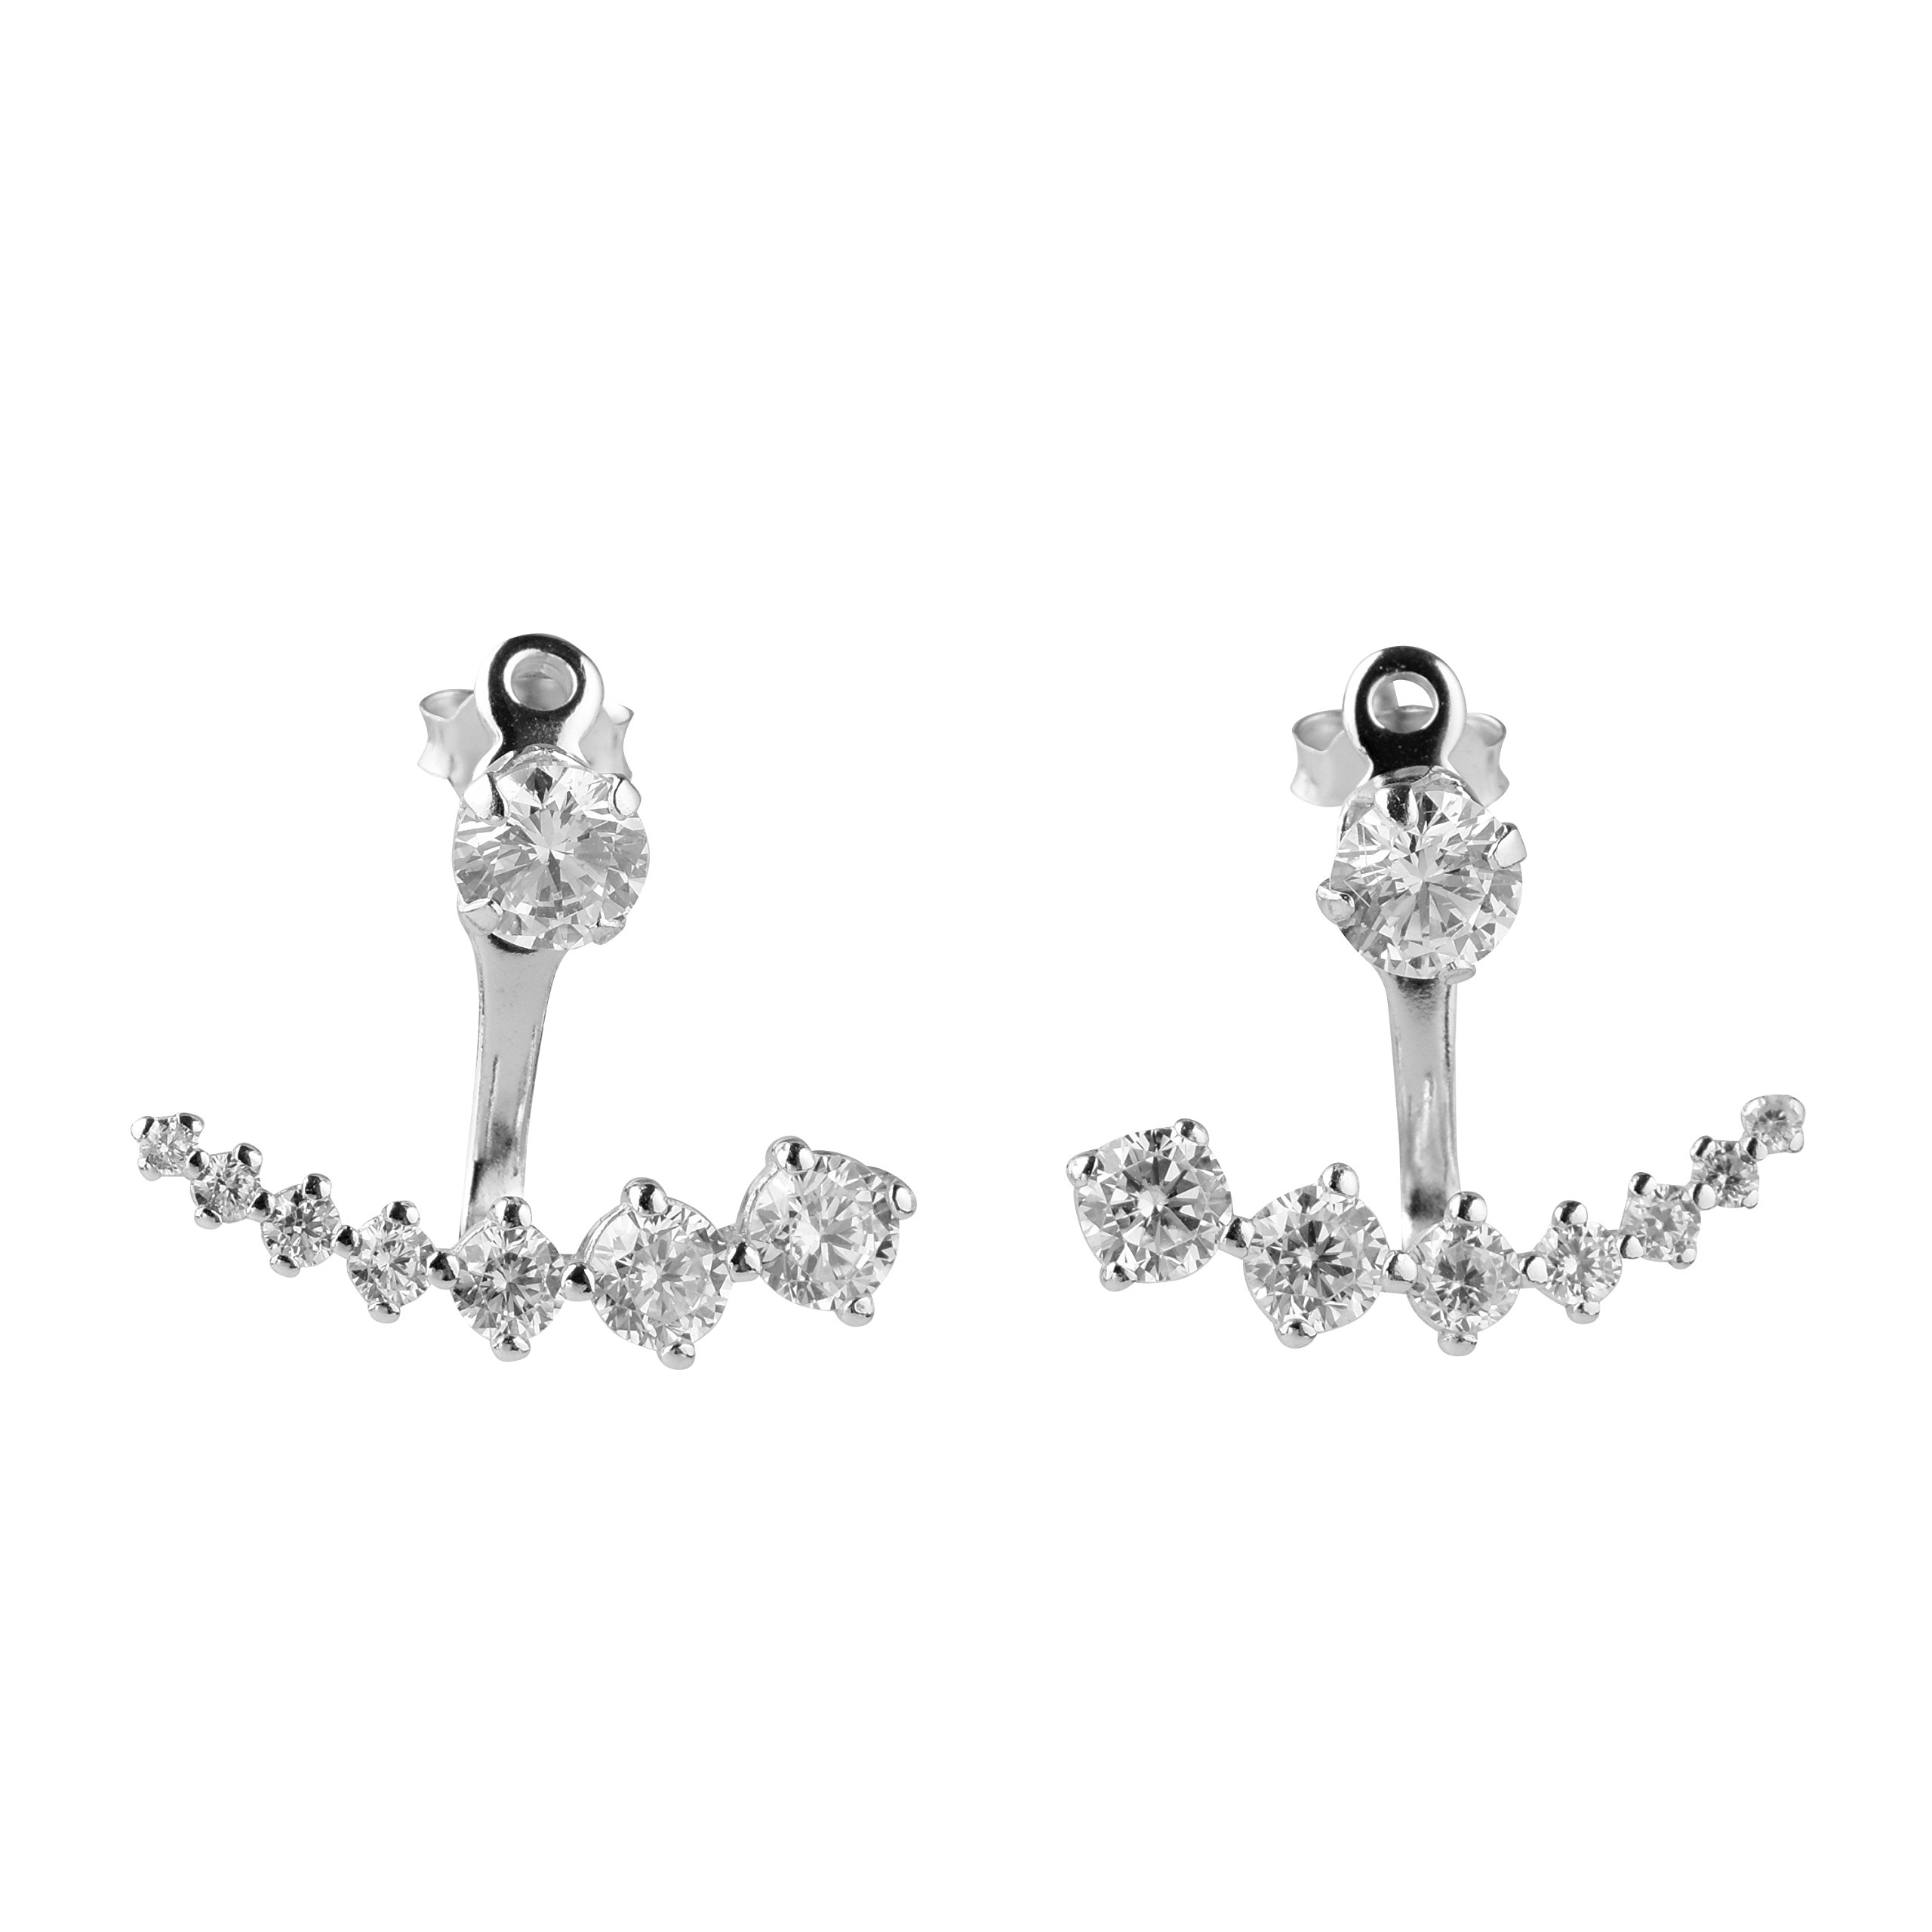 blackbox Jewelry Sterling Silver Square White Cubic Zirconia Ear Jacket Earrings Two Side Earrings